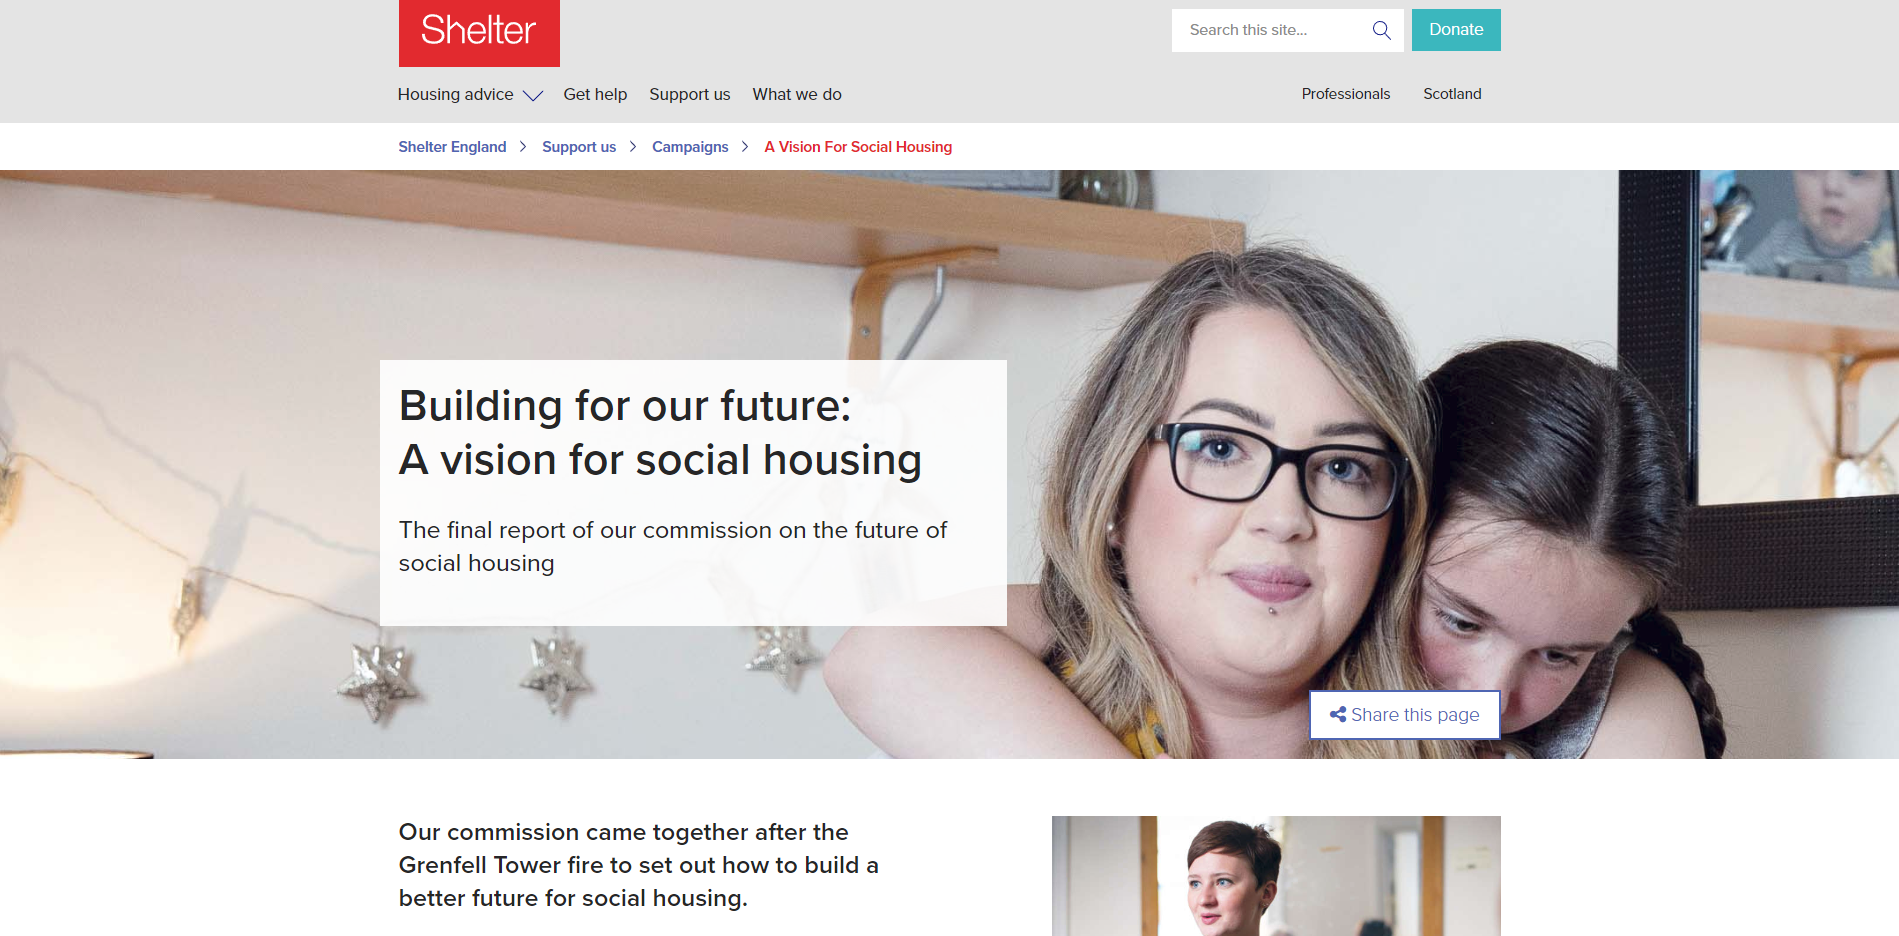 A_Vision_For_Social_Housing_-_Shelter_England_-_Go_2019-07-18_10-36-31.png